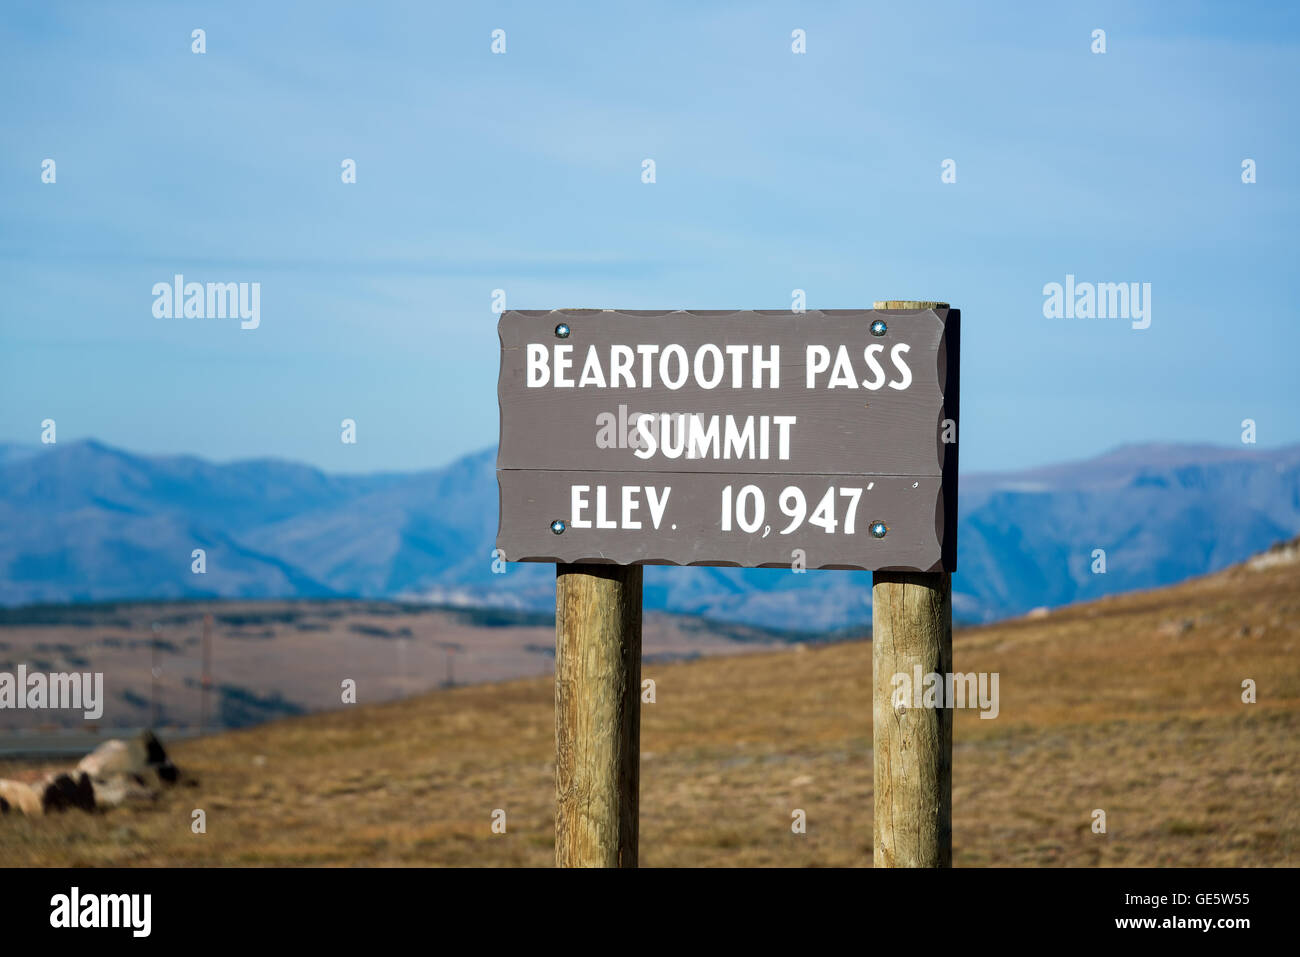 View Of The Beartooth Pass Summit At An Elevation Of Feet - Elevation in feet above sea level